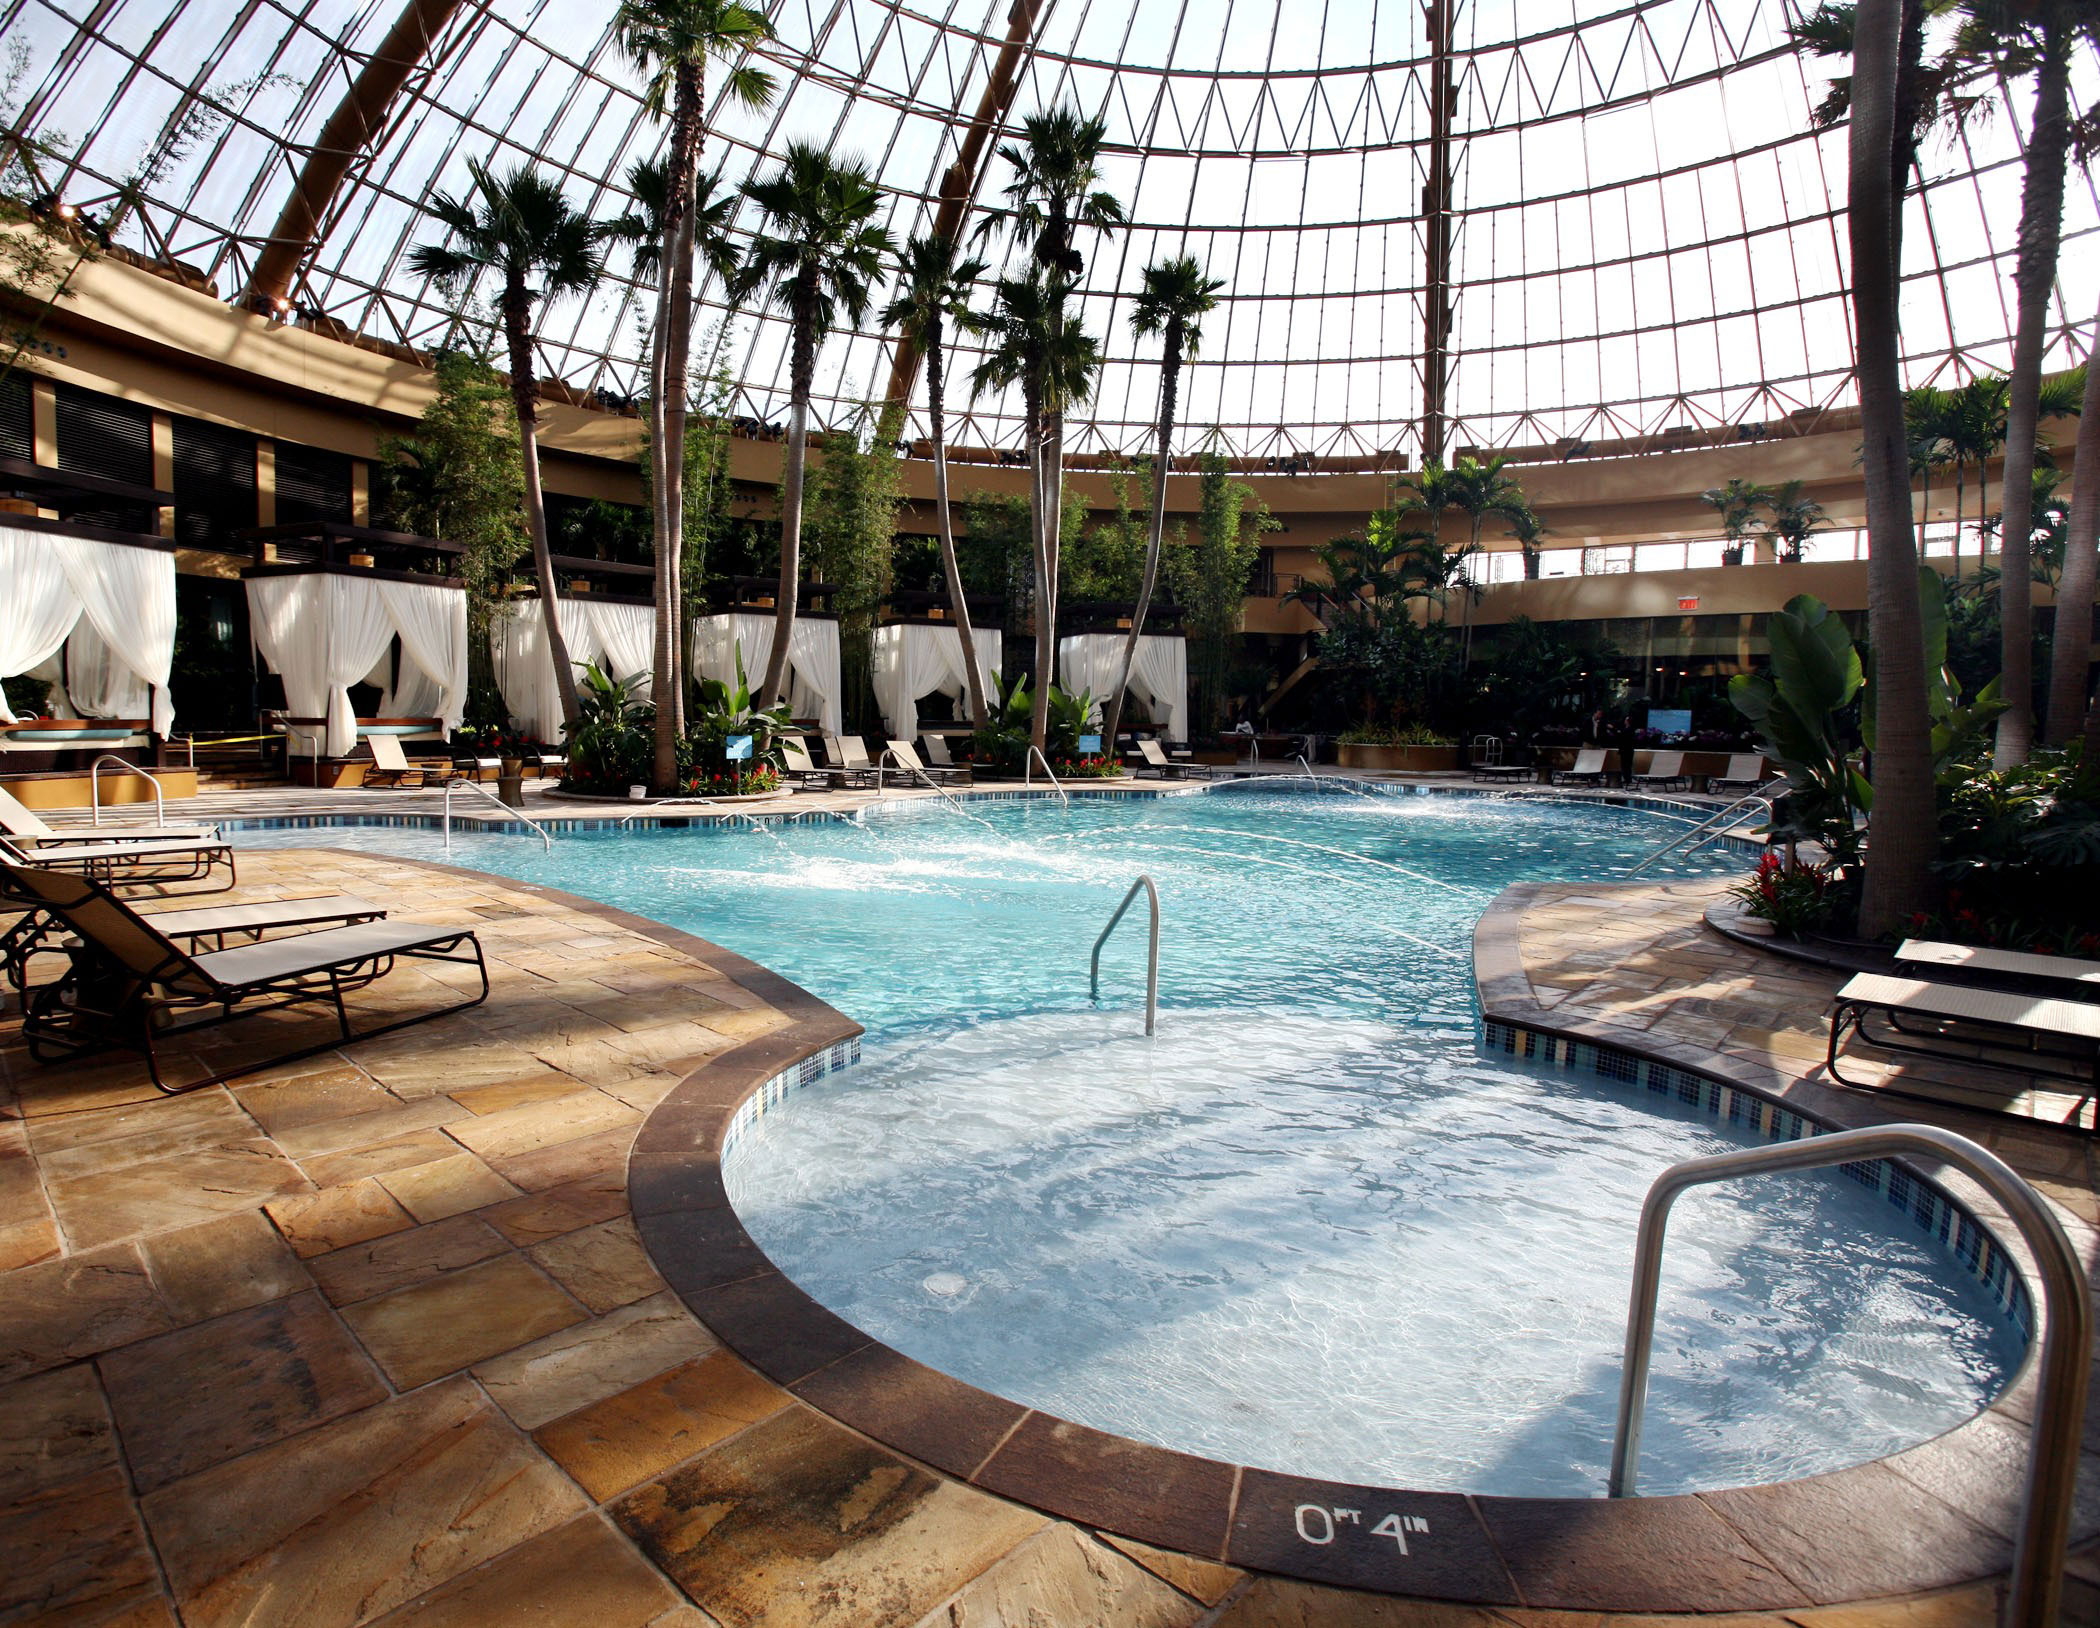 Harrahs Expansion The Pool Whats New In Atlantic City